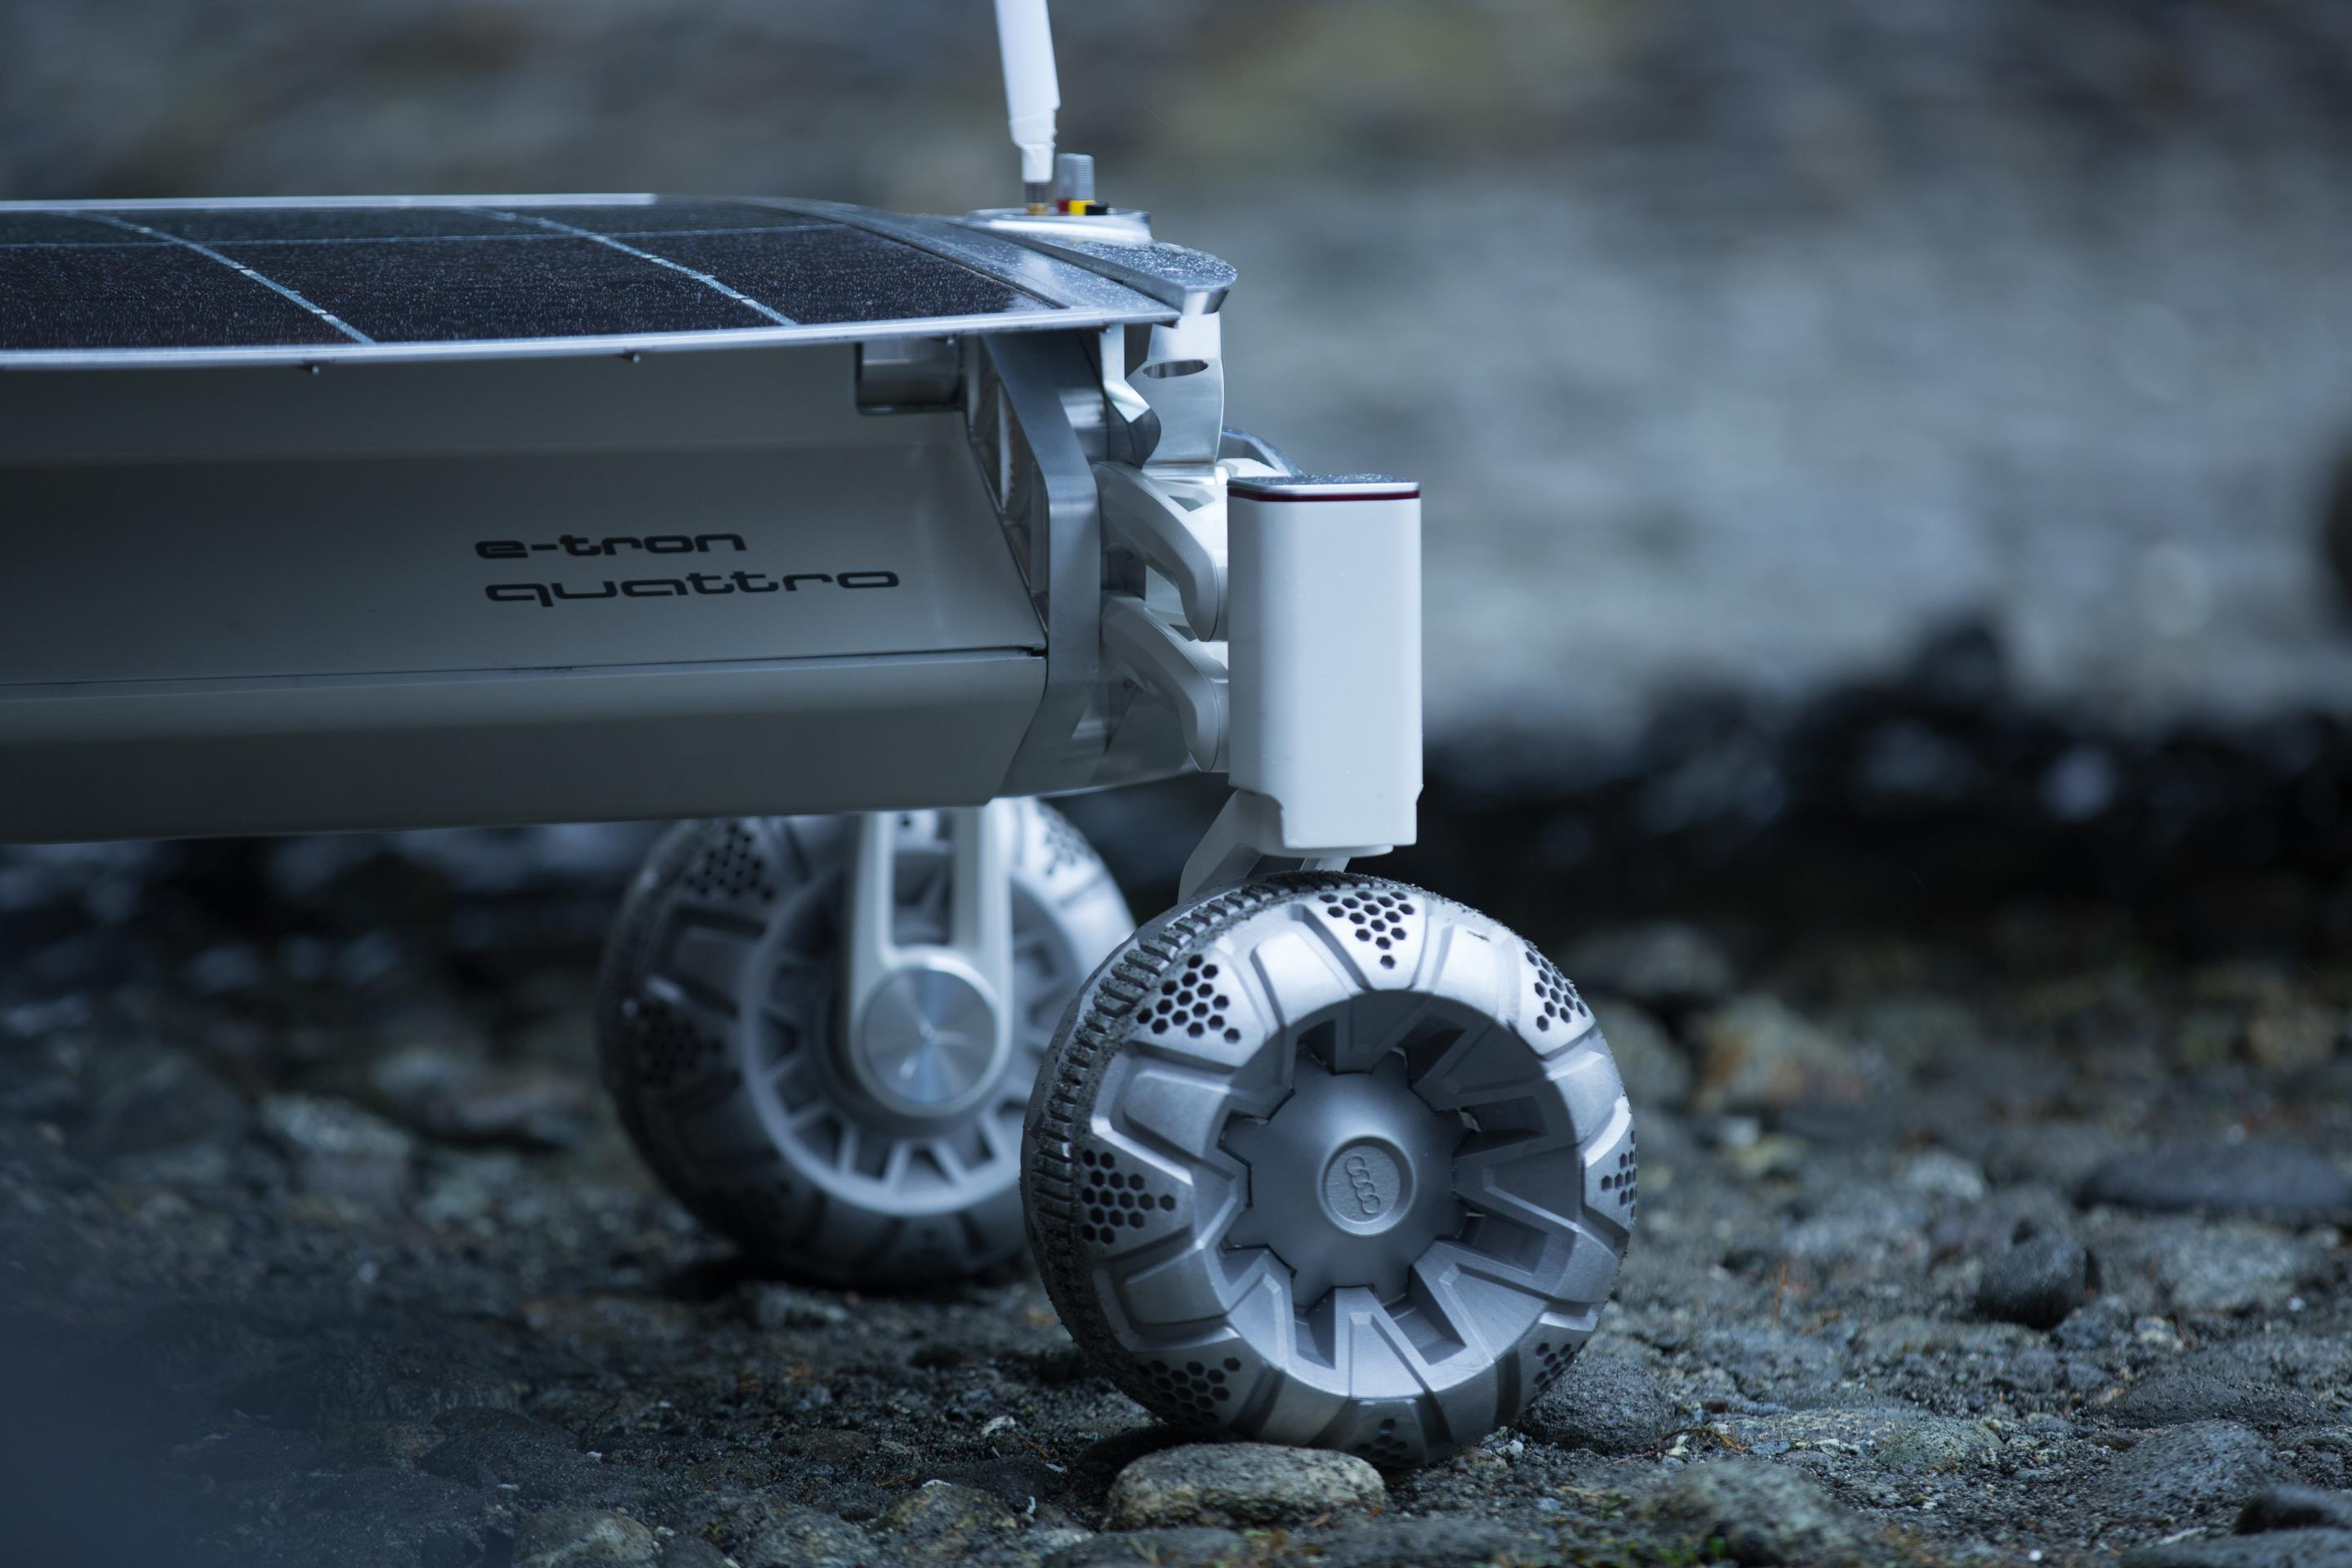 moon rover images - photo #37